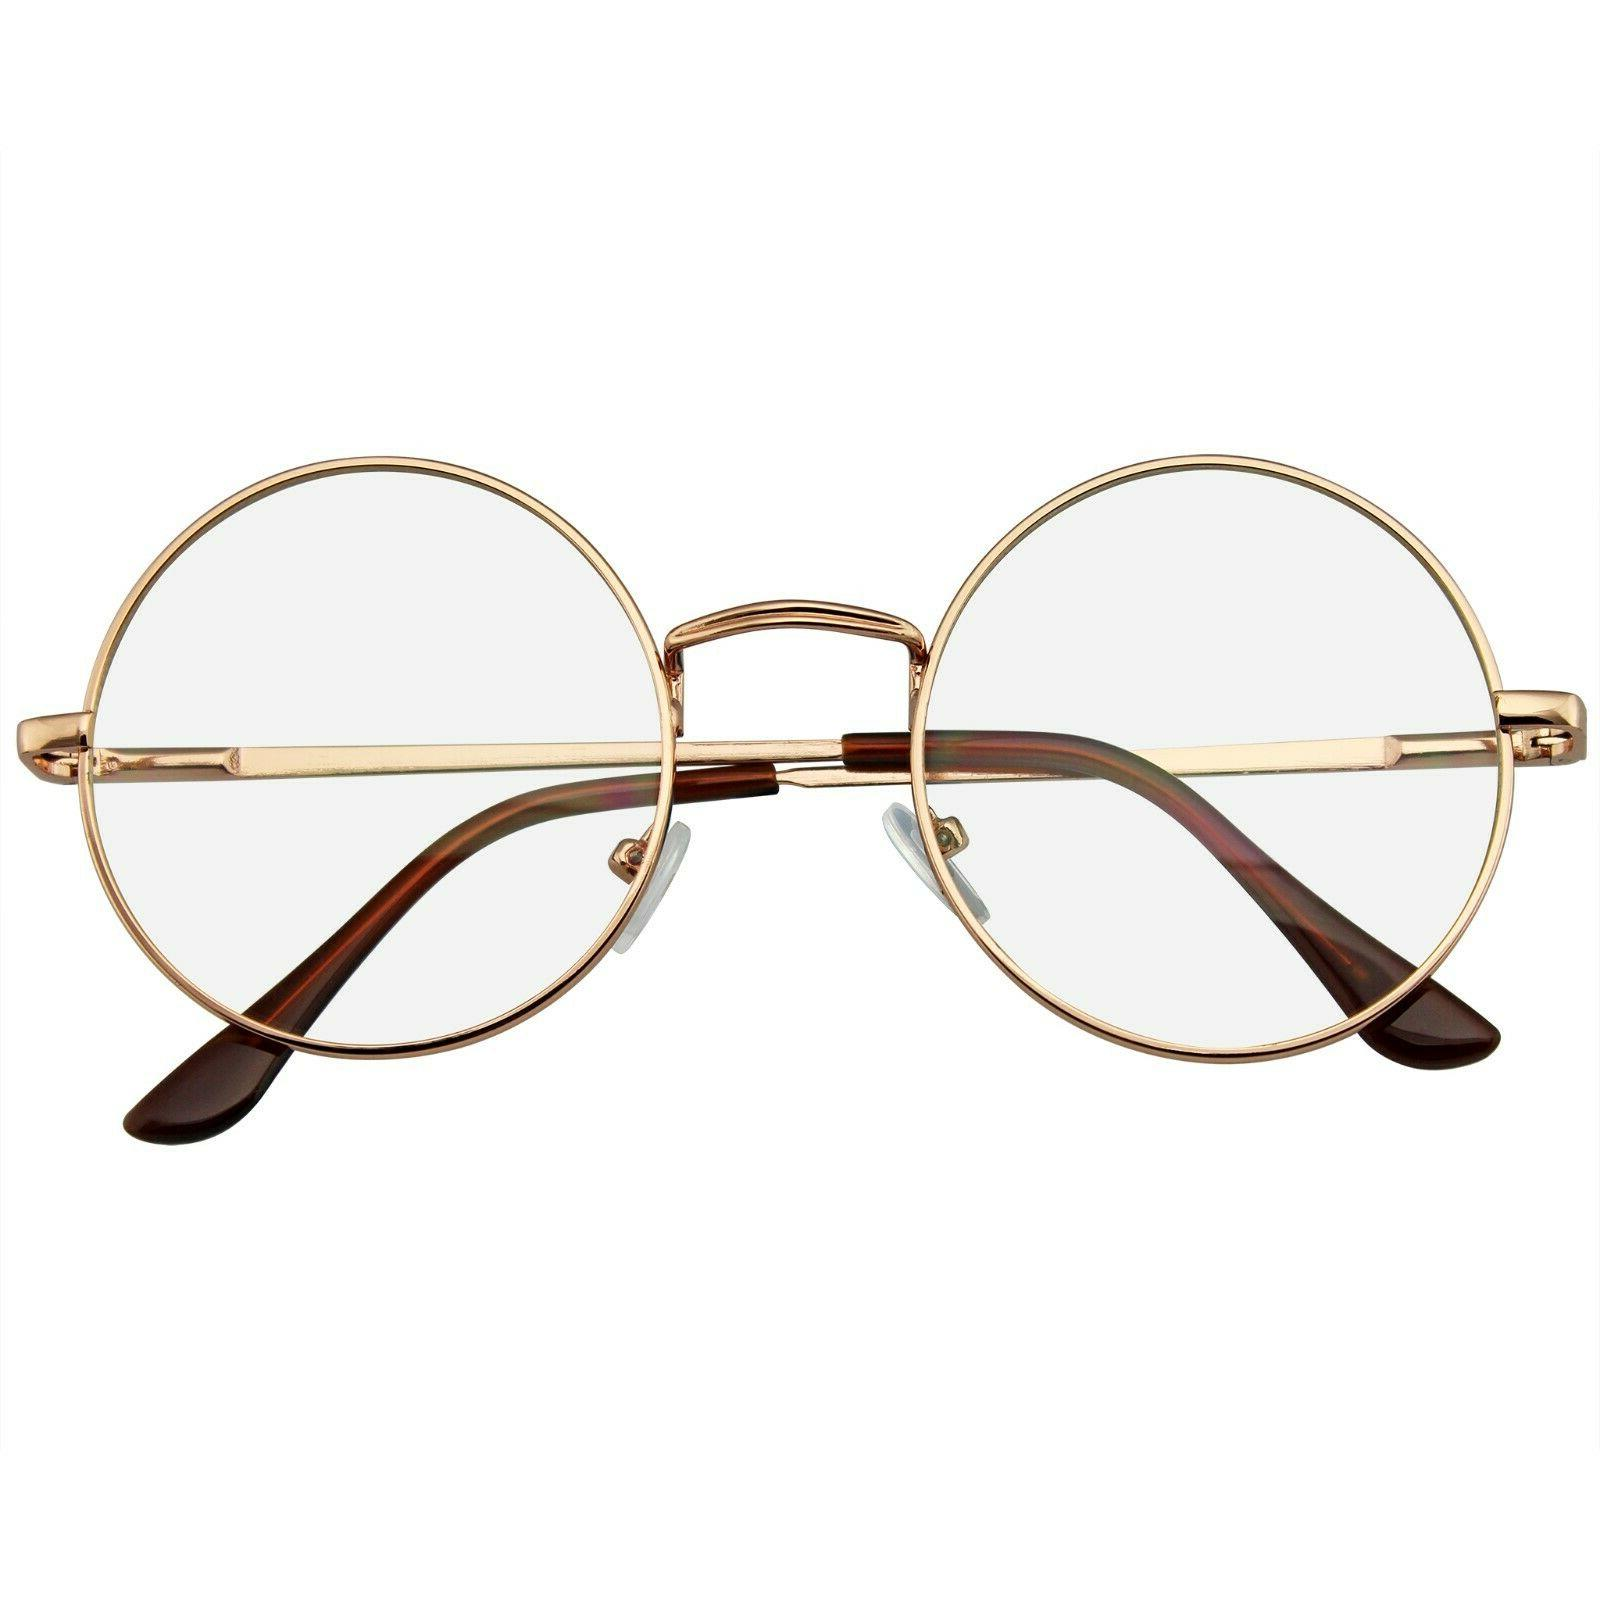 round glasses retro vintage classic metal clear